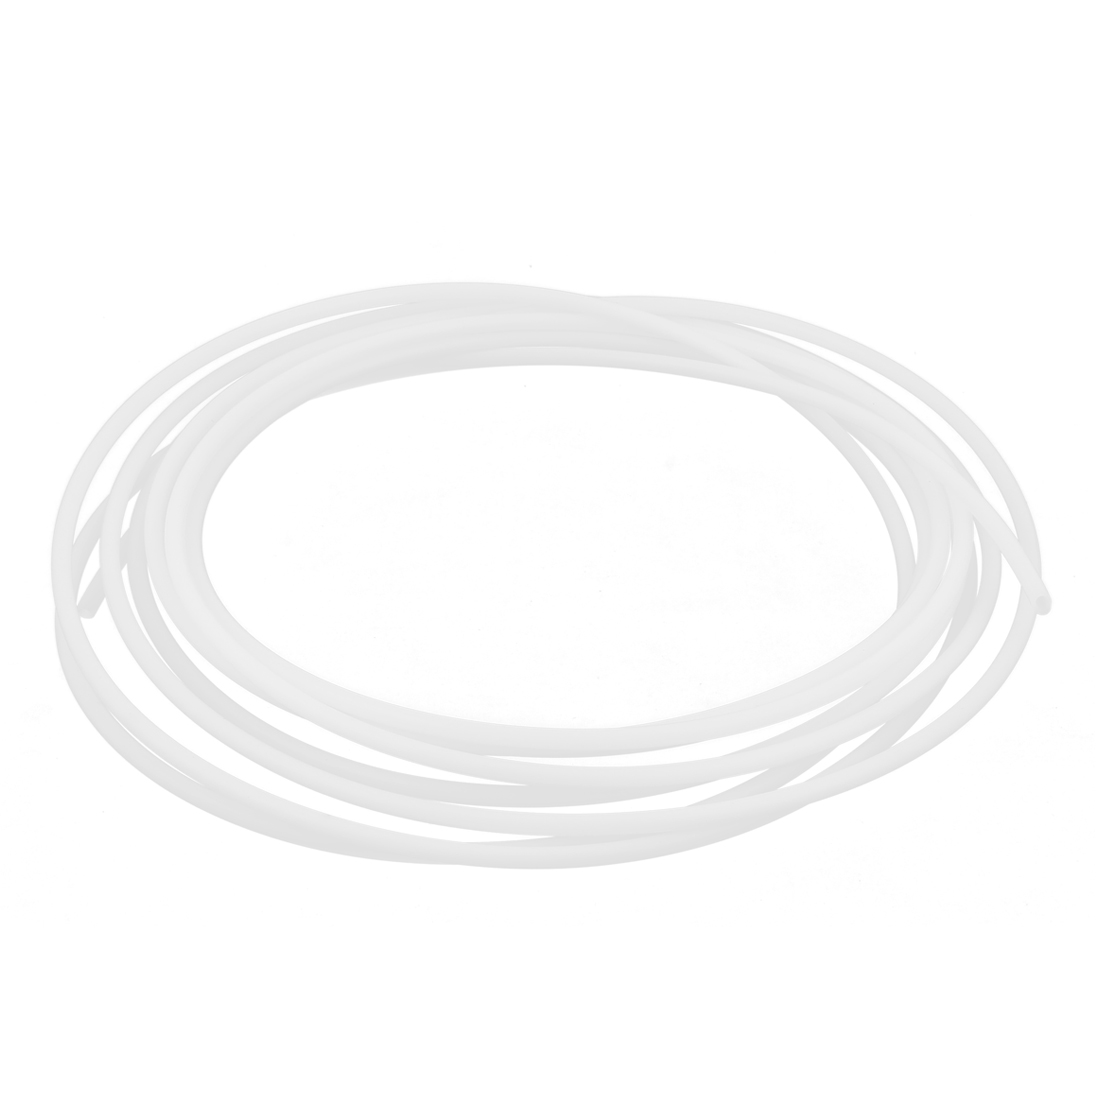 5Meters 3mm ID 5mm OD PTFE Tubing Tube Pipe for 3D Printer RepRap